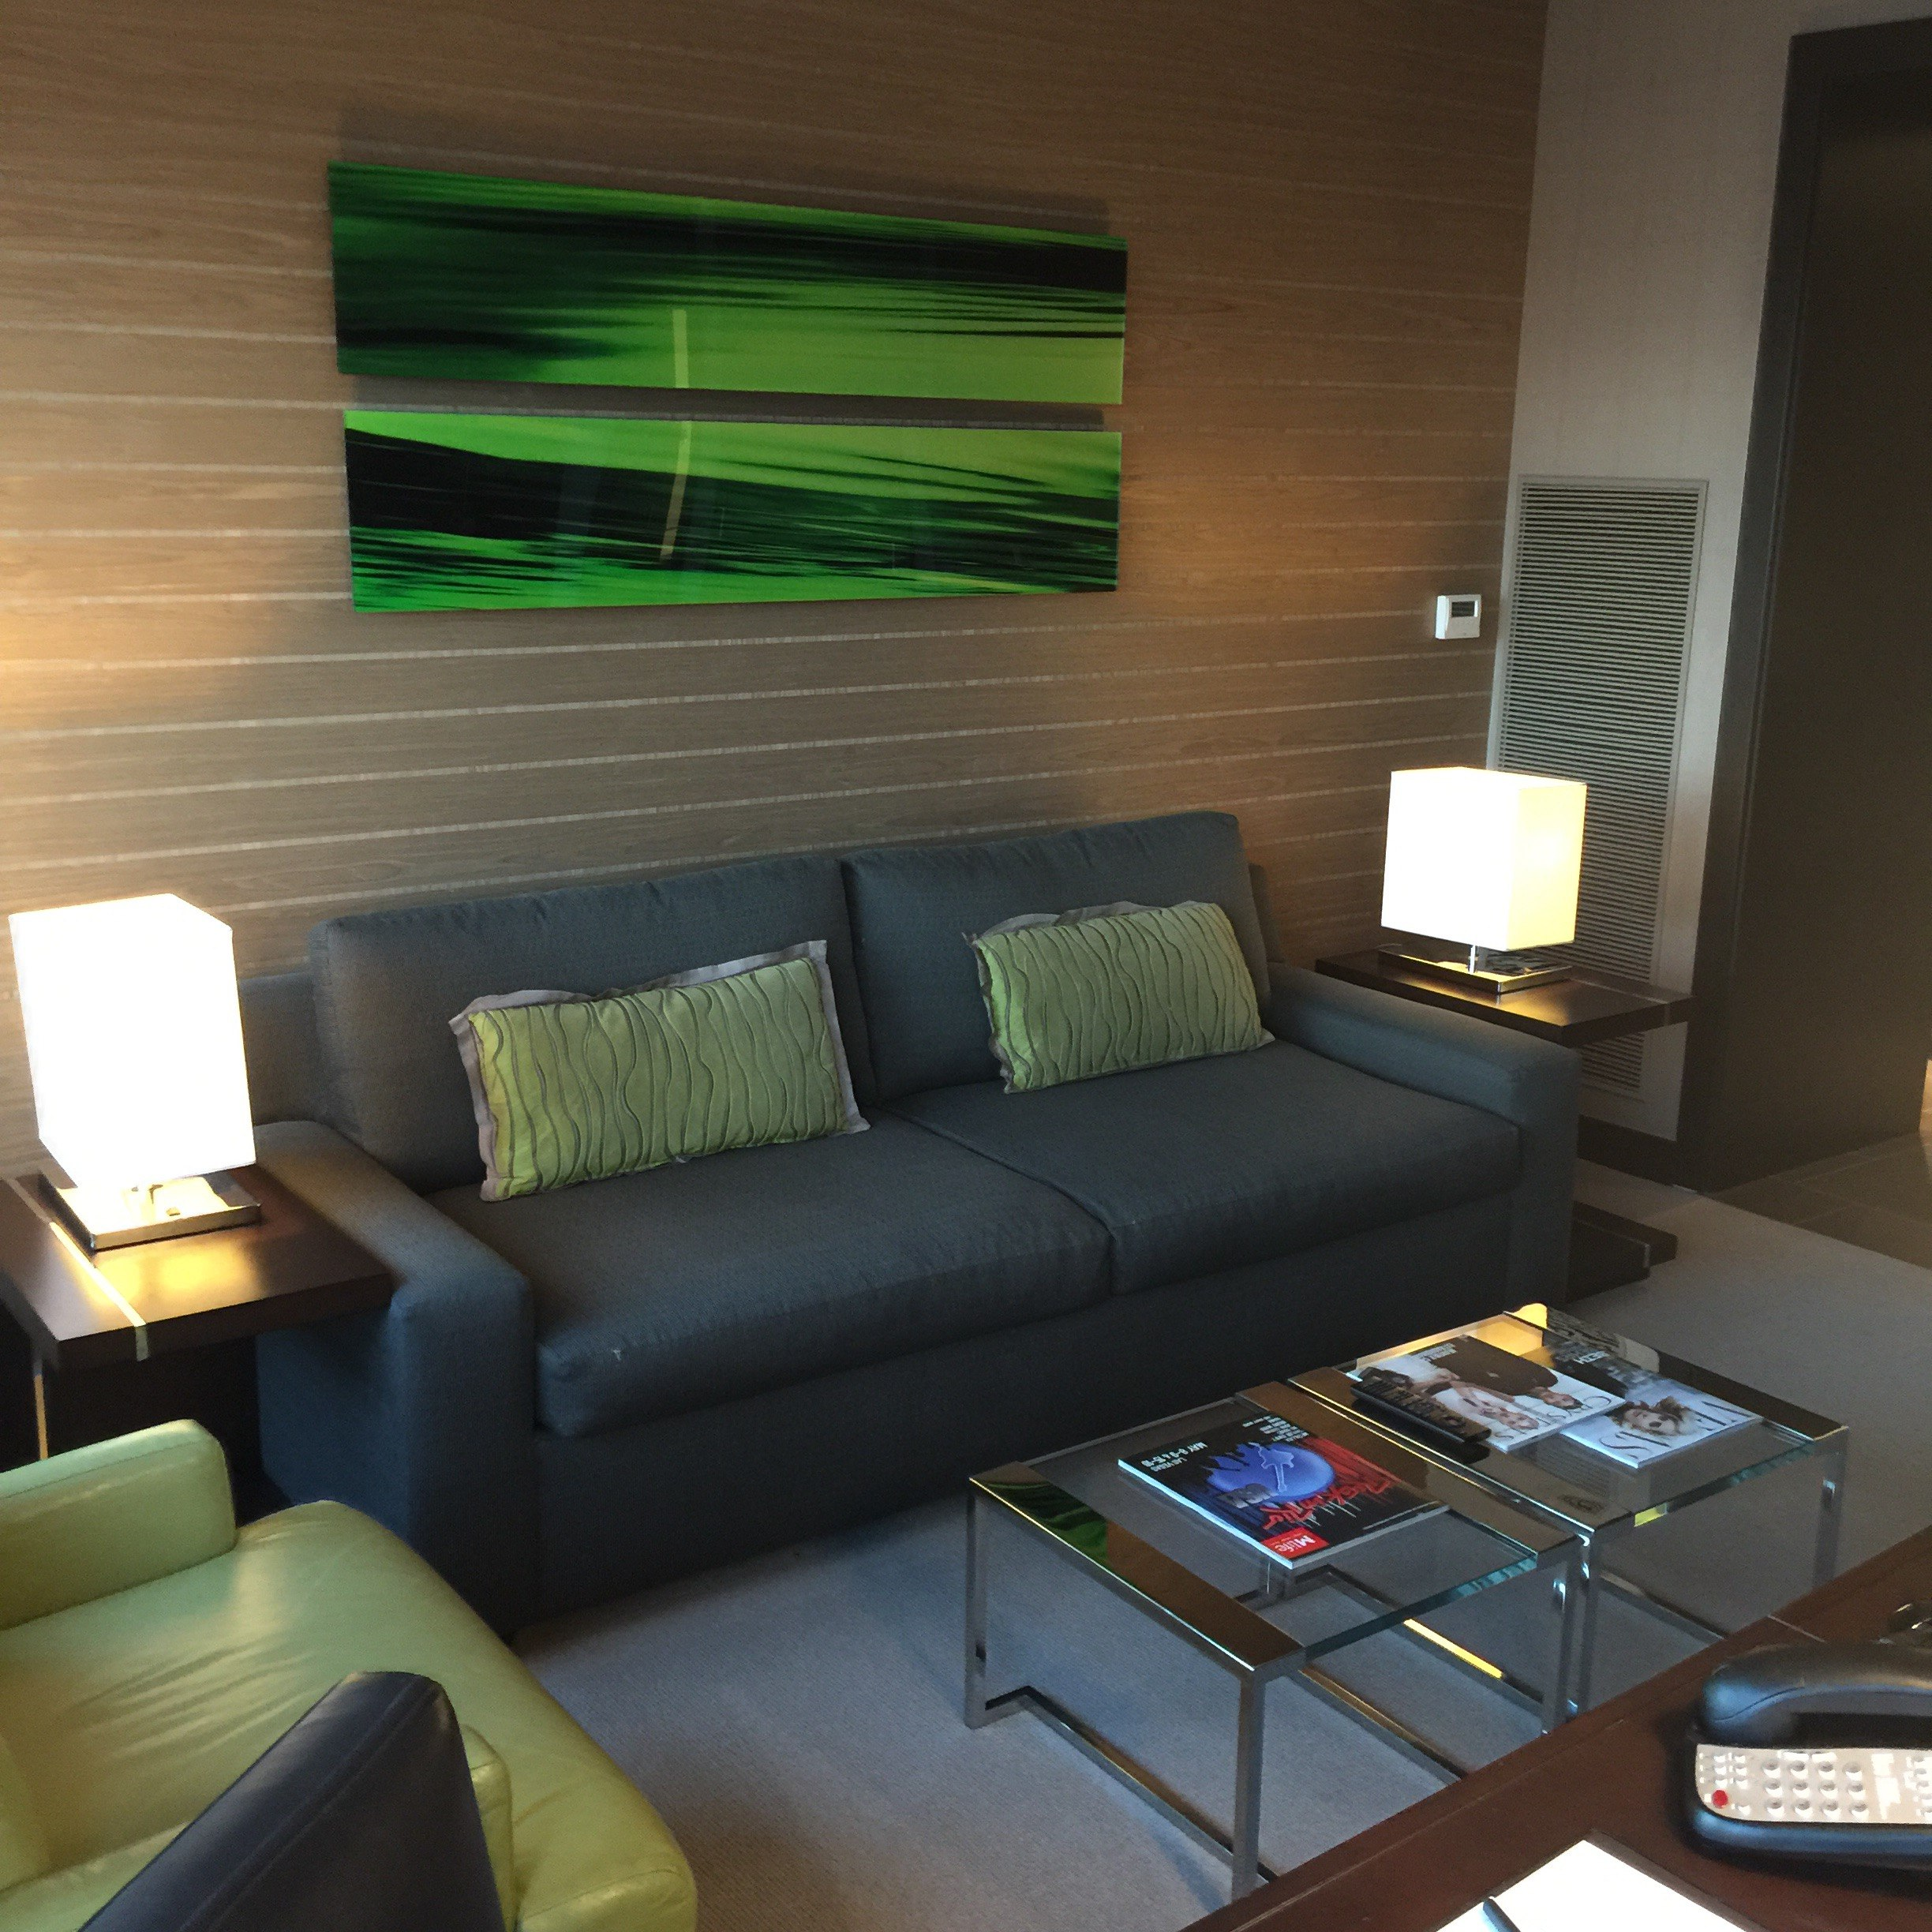 vdara room tour with couches